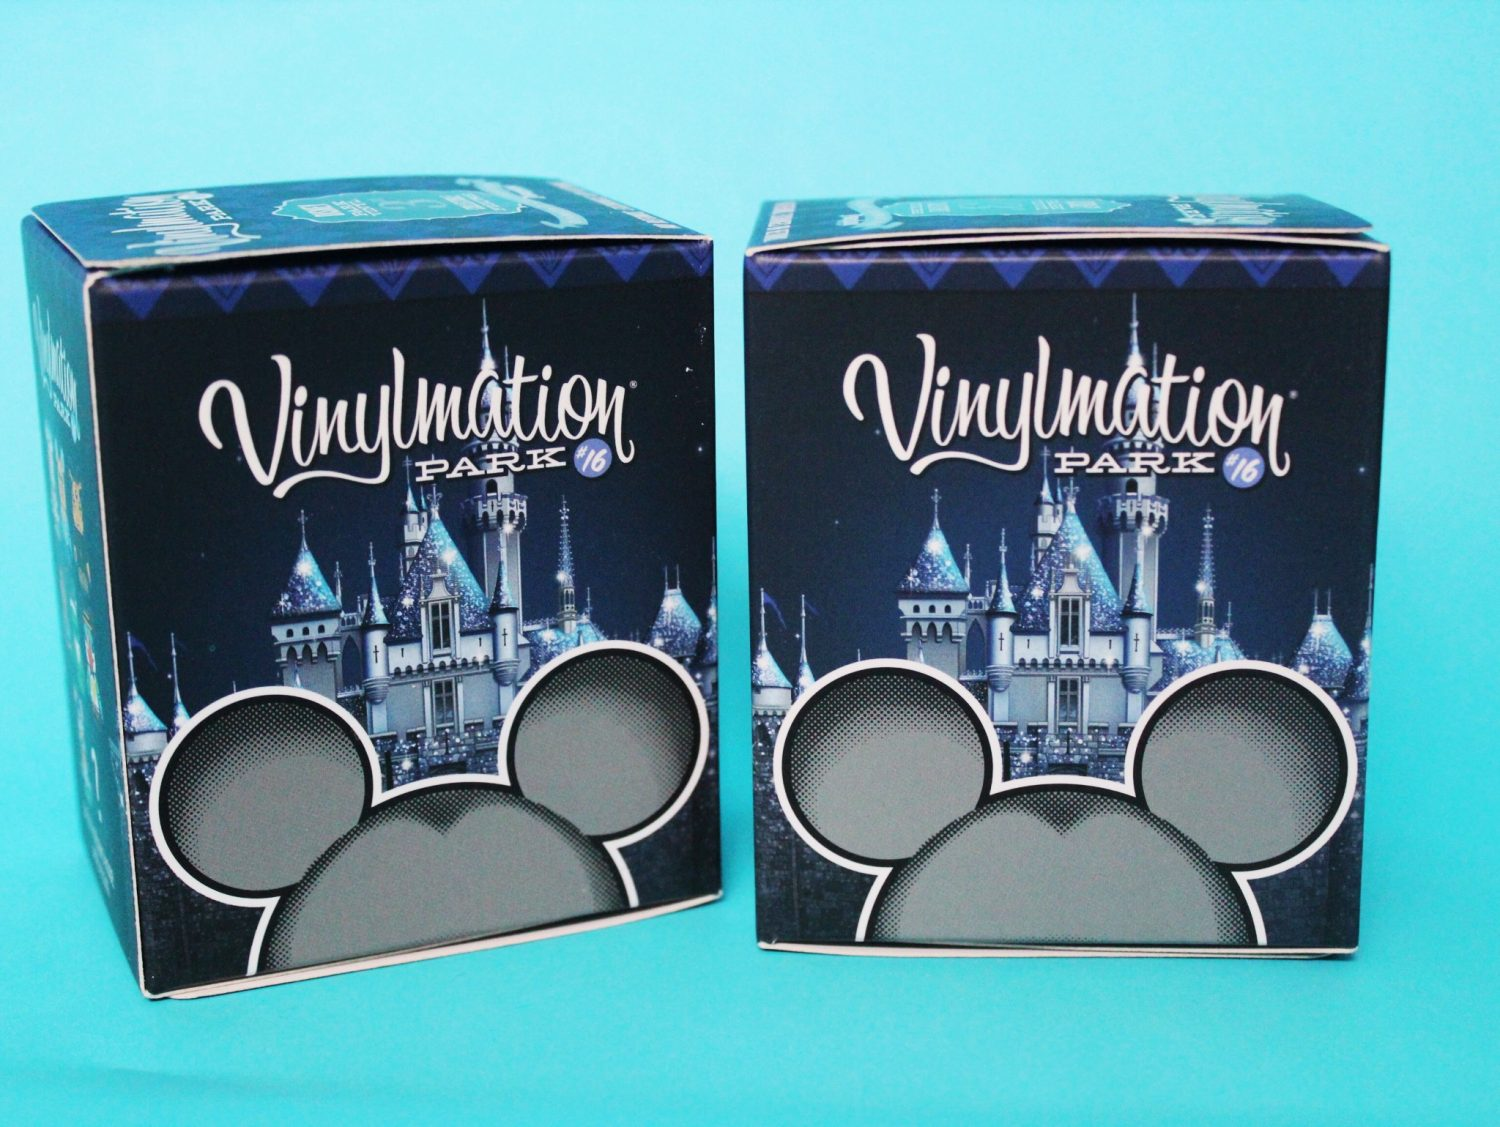 Park Series 16 Vinylmation